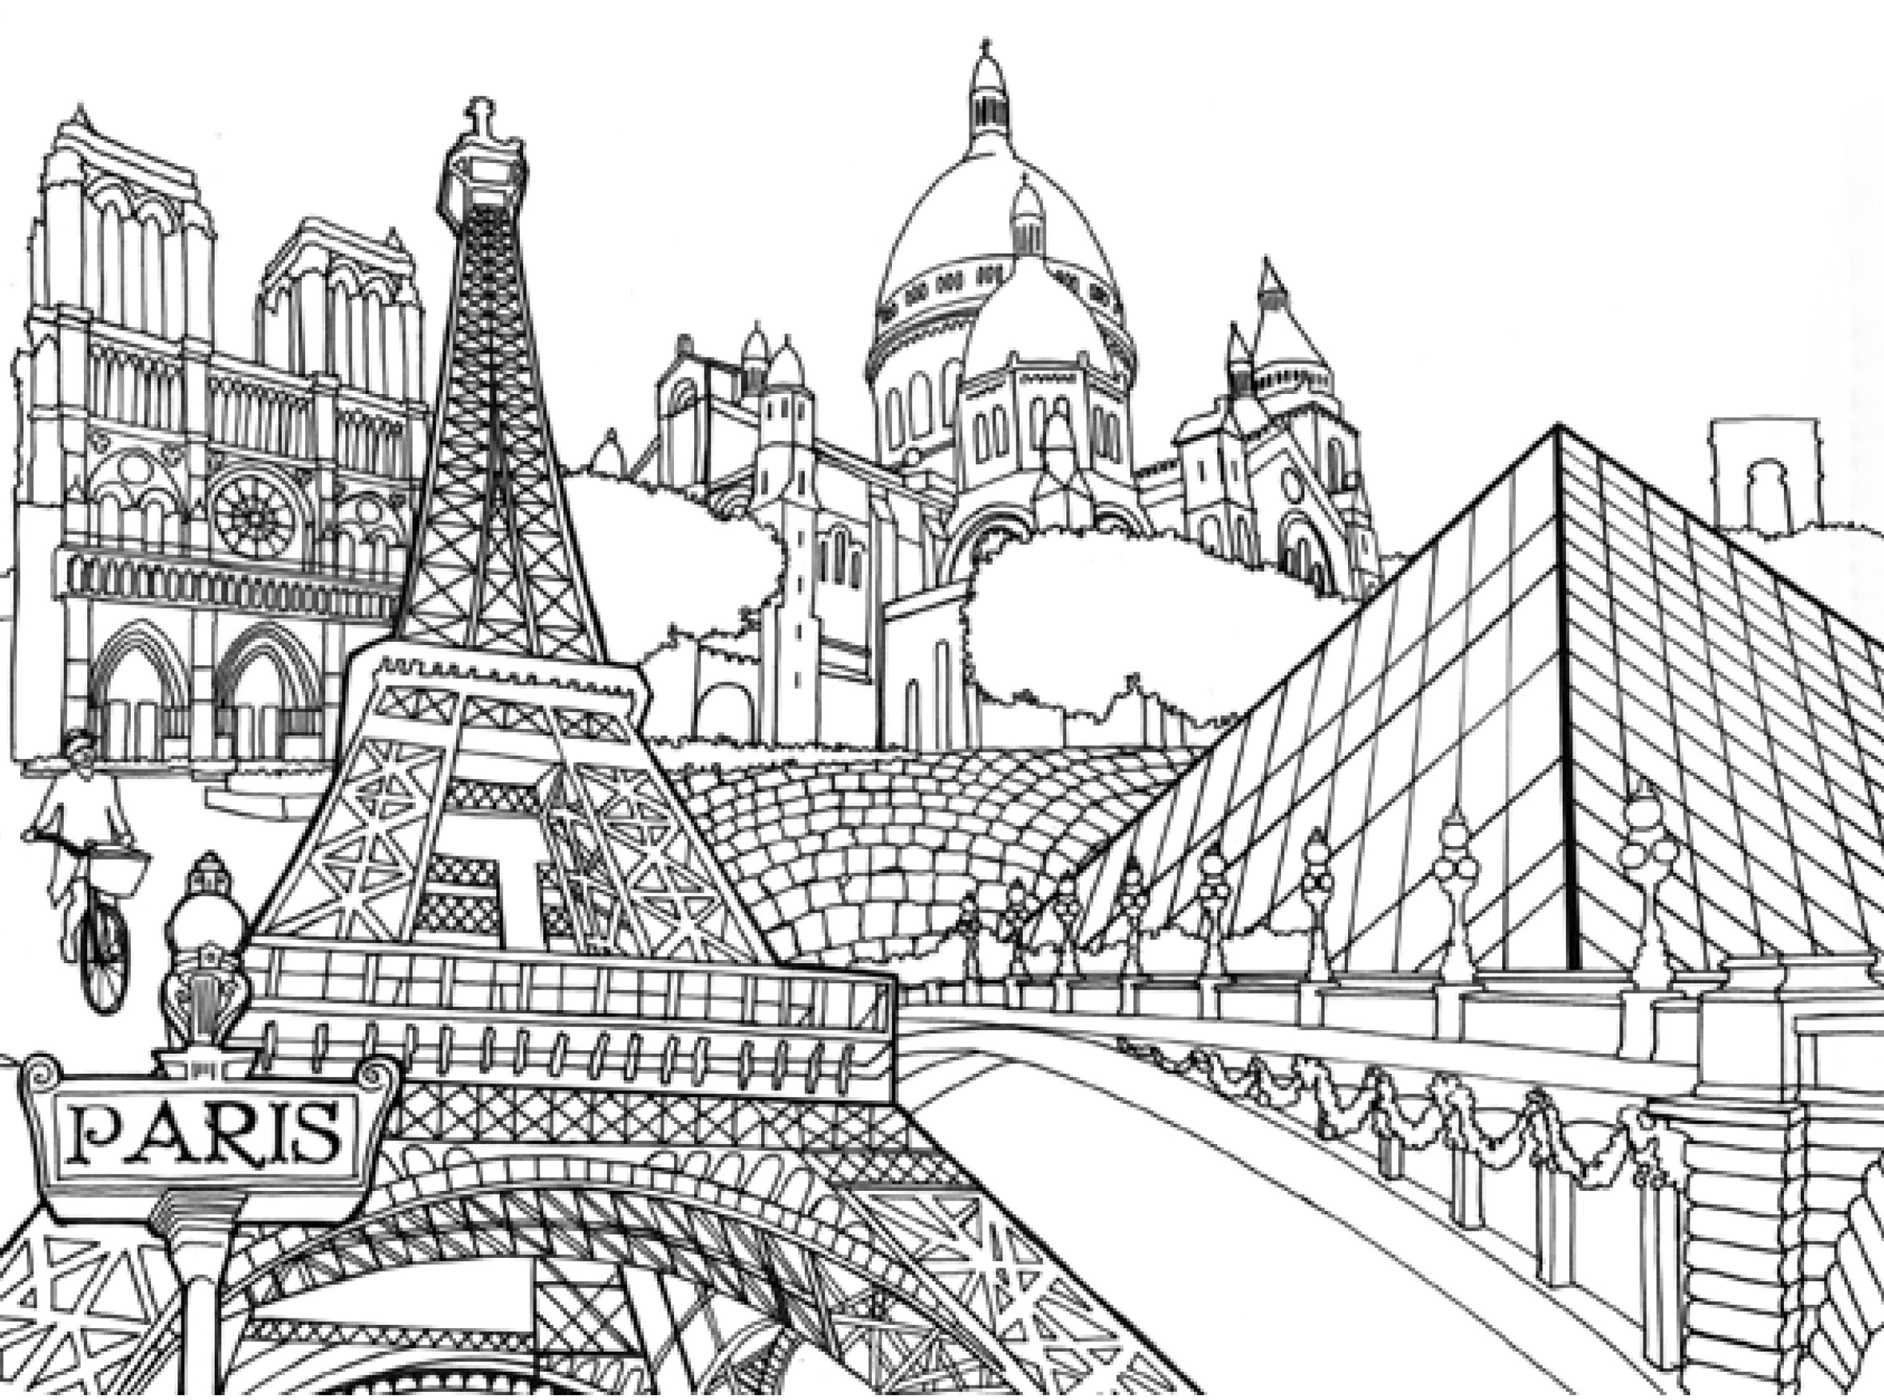 Paris coloring book for adults - Amazon Com Pocket Posh Panorama Adult Coloring Book Architecture Unfurled An Adult Coloring Book 0050837356603 Andrews Mcmeel Publishing Books